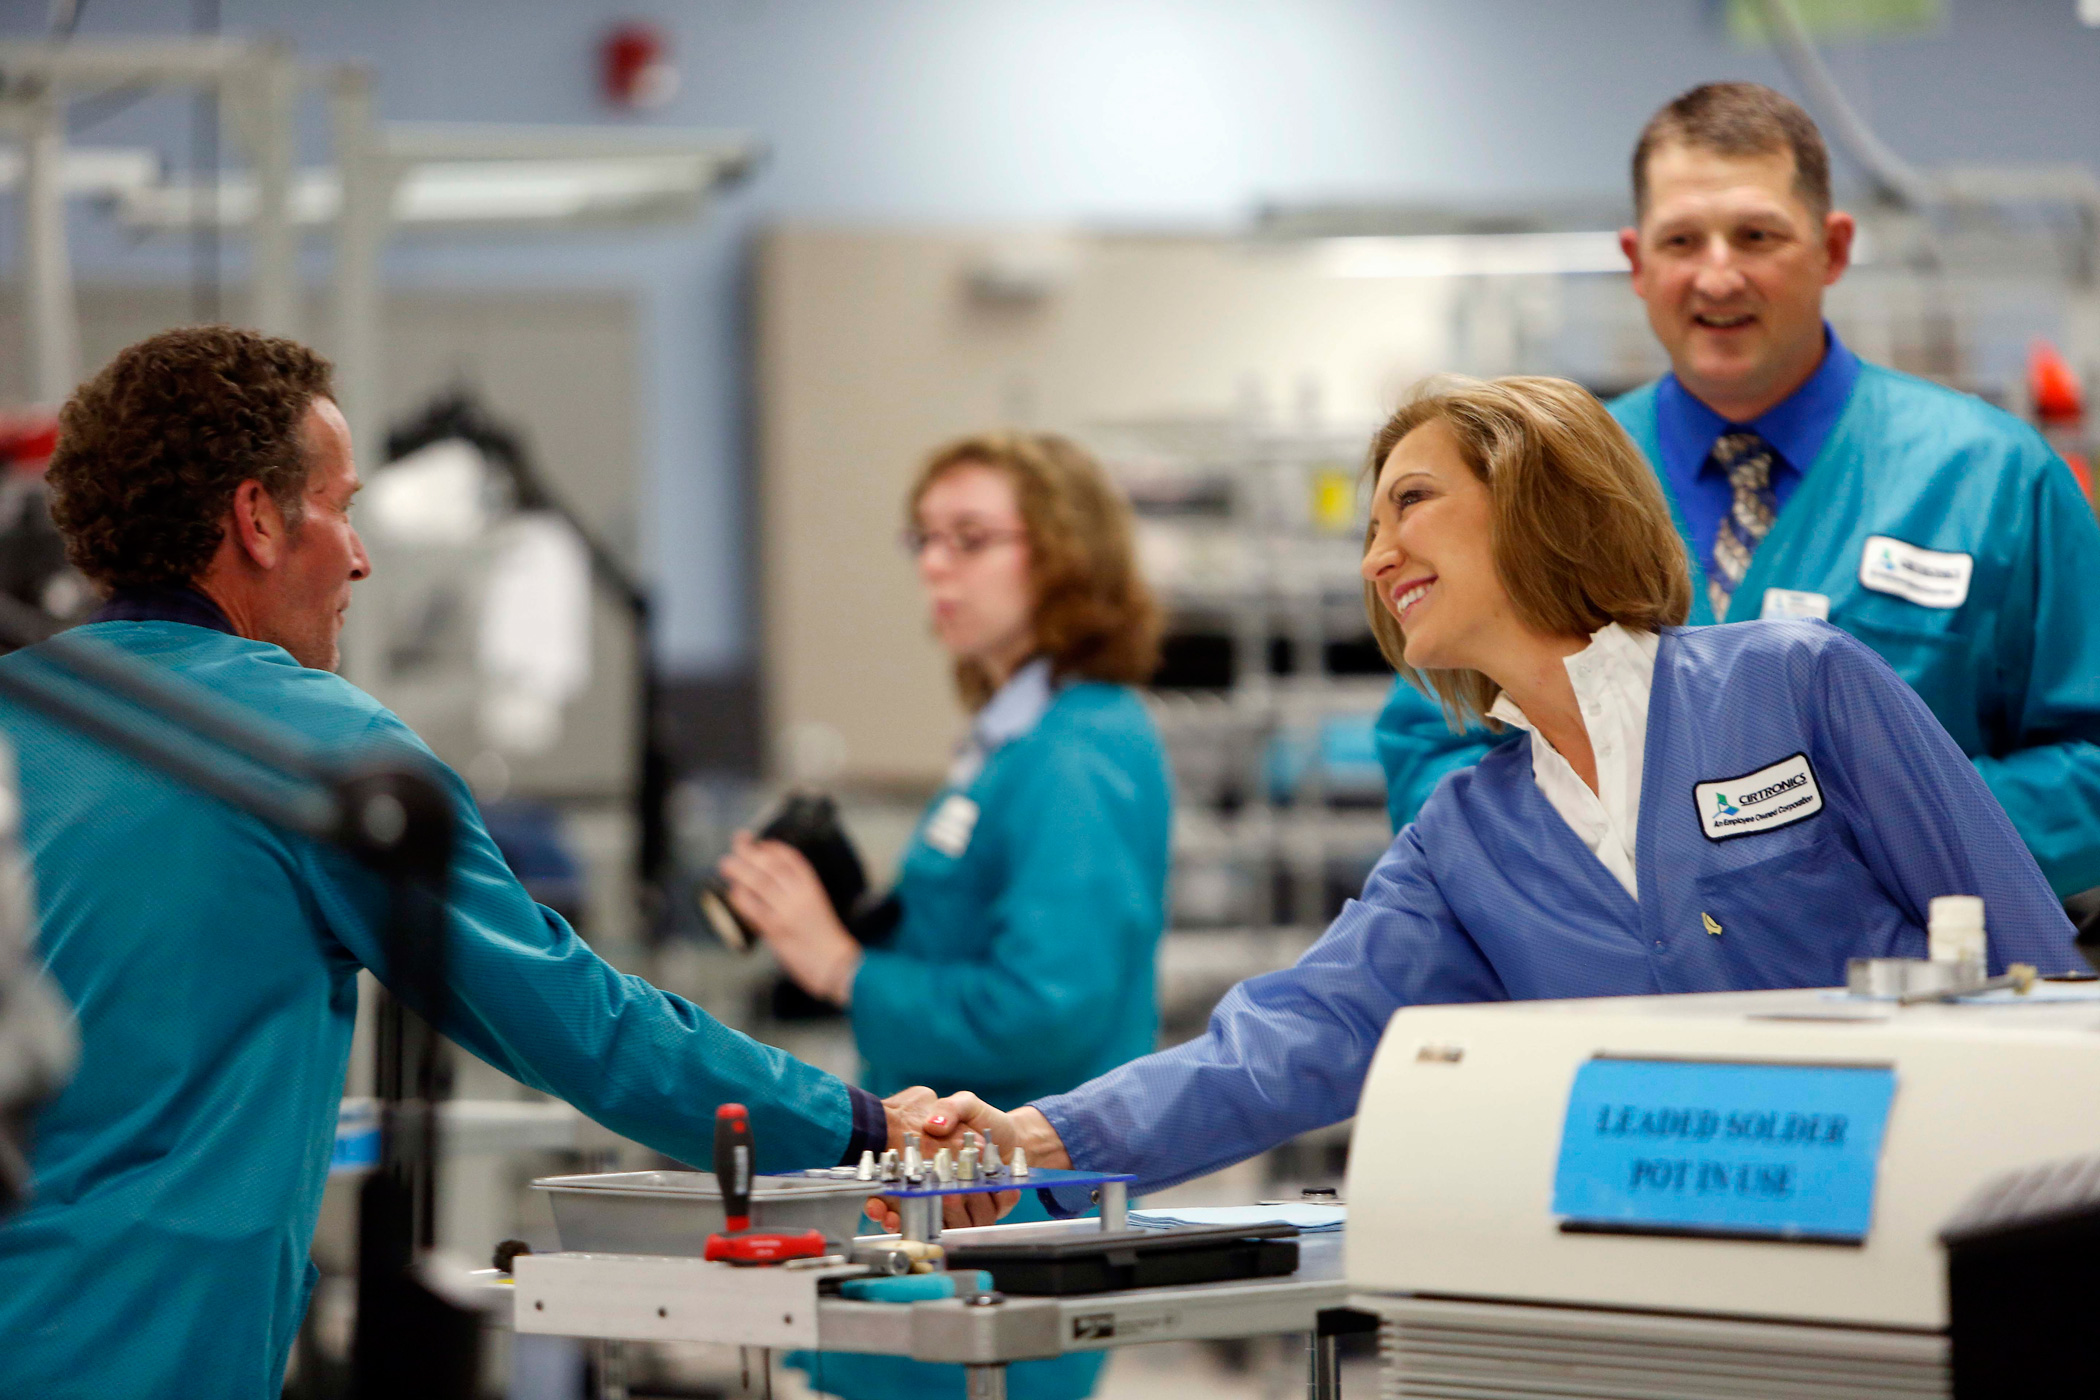 Carly Fiorina, shakes hands with employees during a tour of Cirtronics on June 10, 2015, in Milford, N.H.